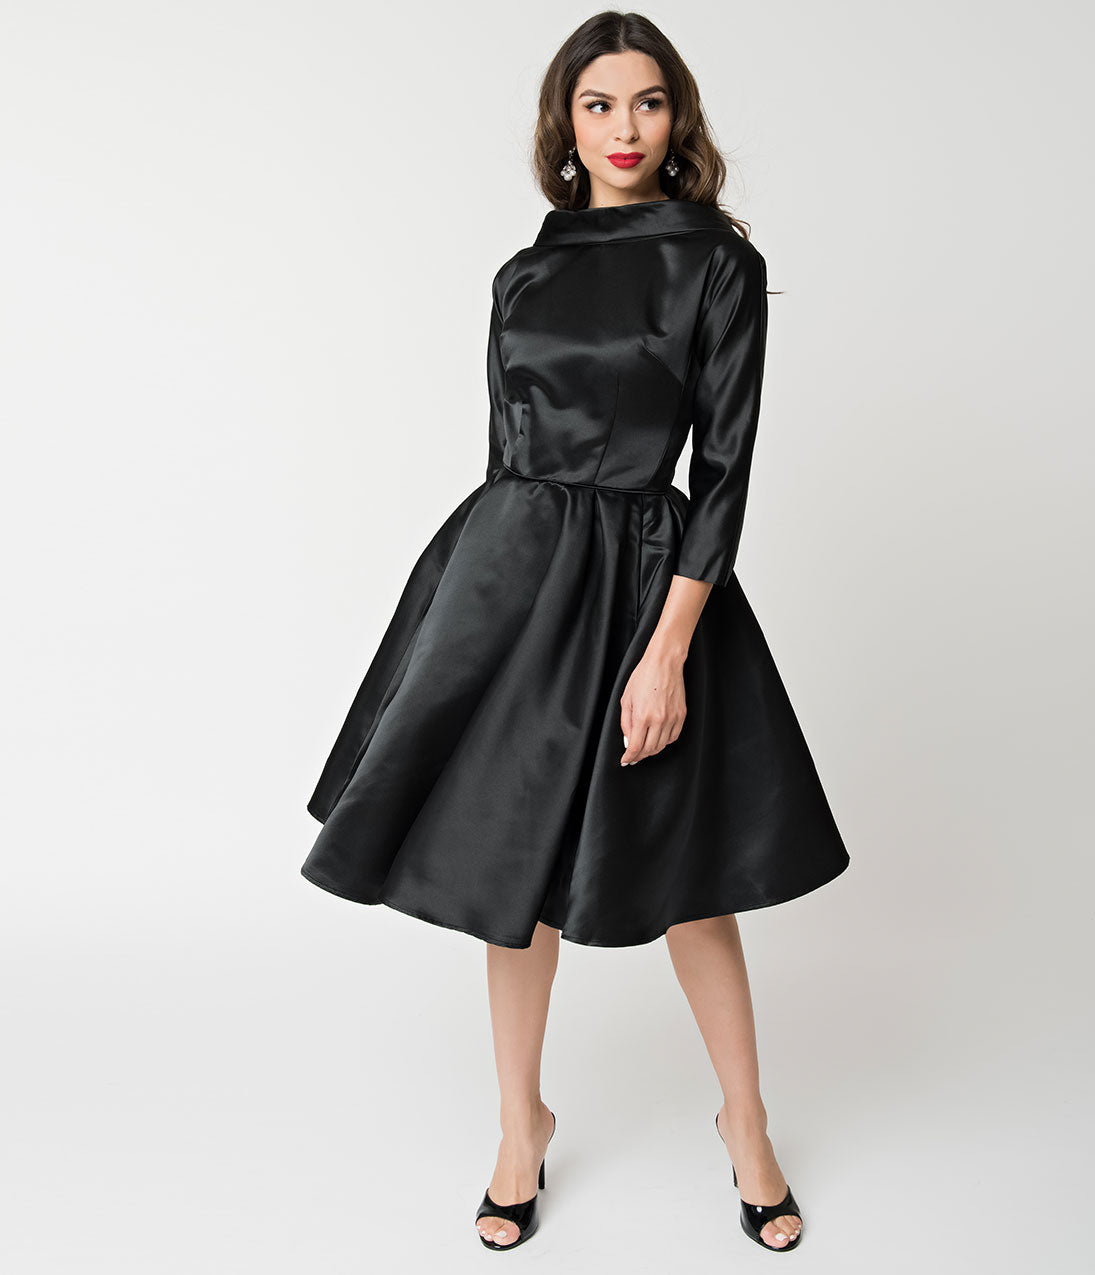 1950s Dresses, 50s Dresses | 1950s Style Dresses Unique Vintage 1950S Style Black Satin Sleeved Lana Holiday Dress $128.00 AT vintagedancer.com